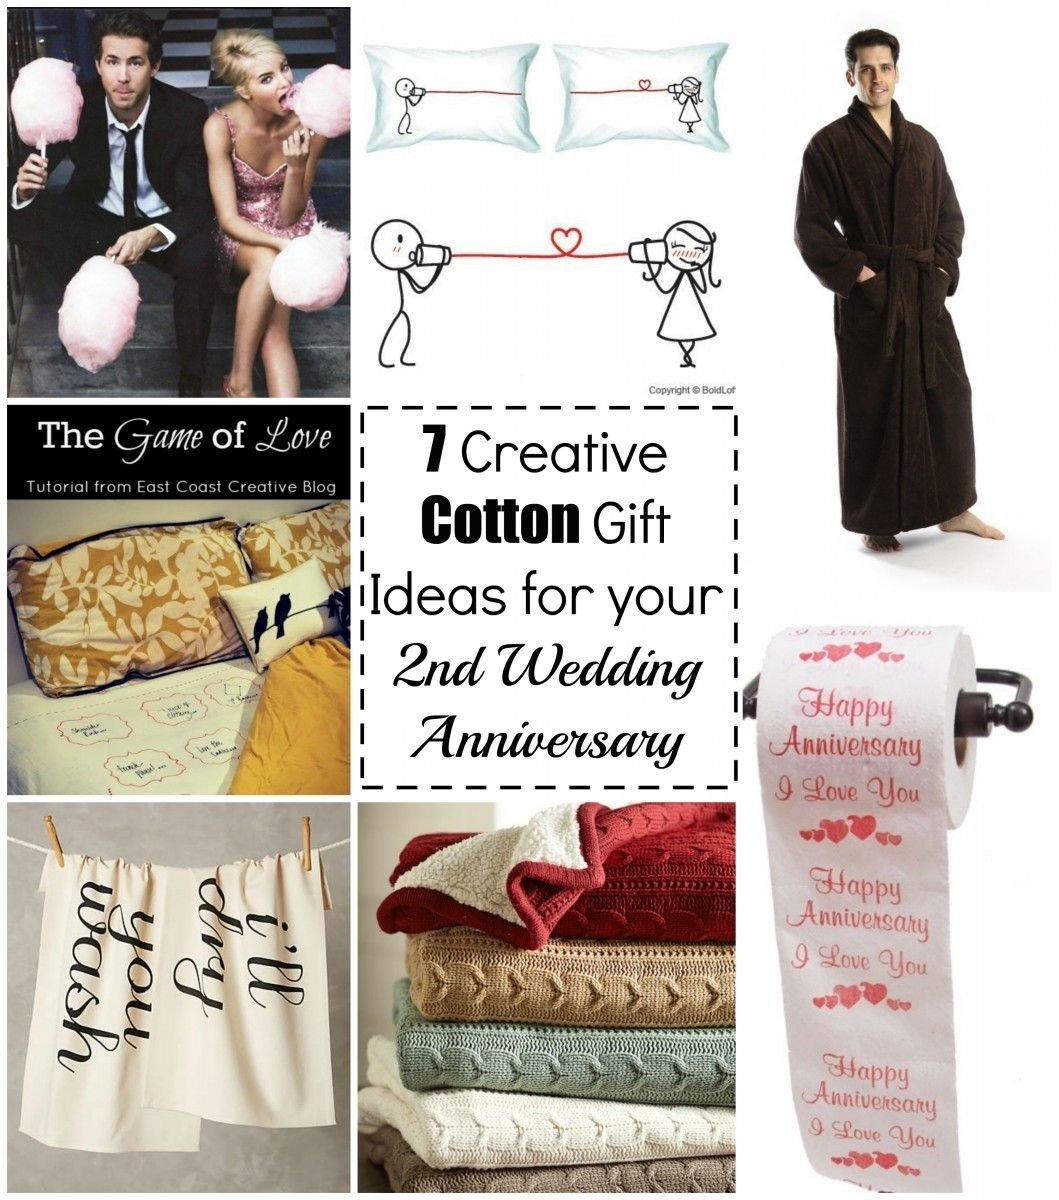 10 Fashionable Second Year Anniversary Gift Ideas 7 creative cotton gift ideas for your 2nd wedding anniversary 5 2021